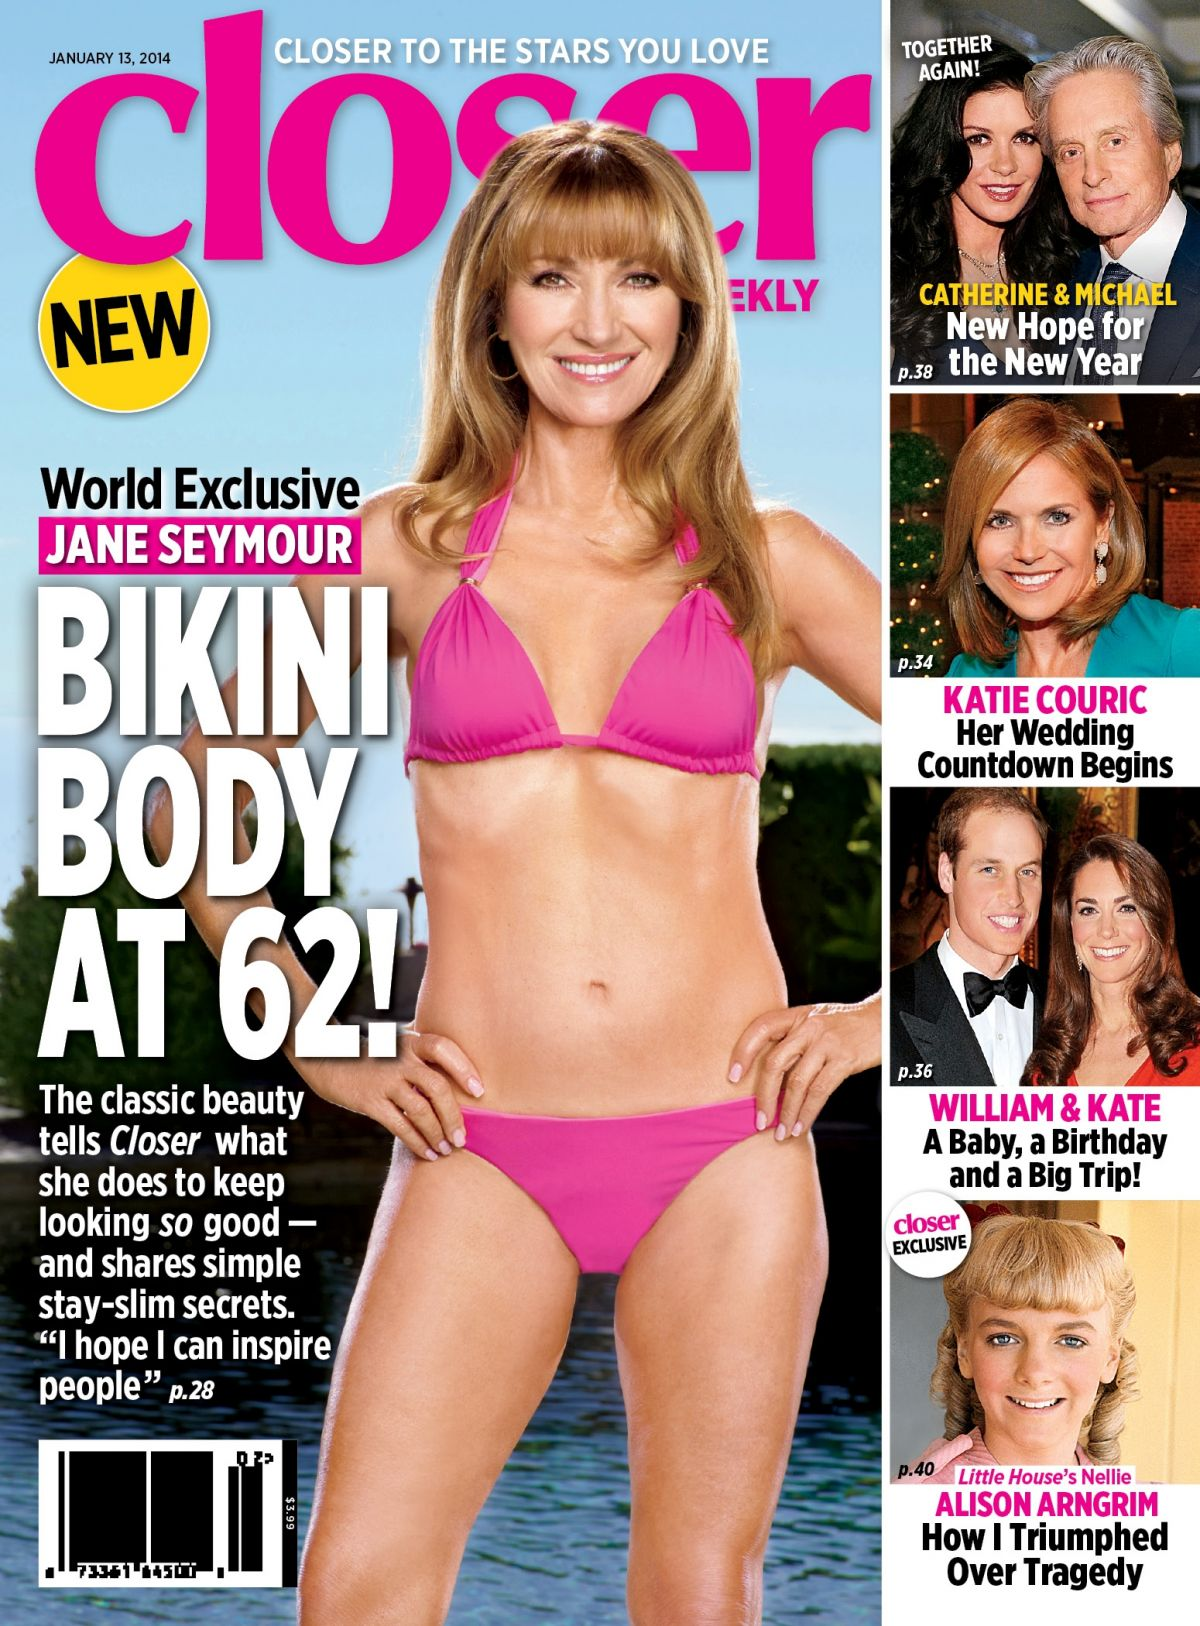 JANE SEYMOUR in Bikini on the Cover of Closer Weekly Magazine, January 2014 Issue